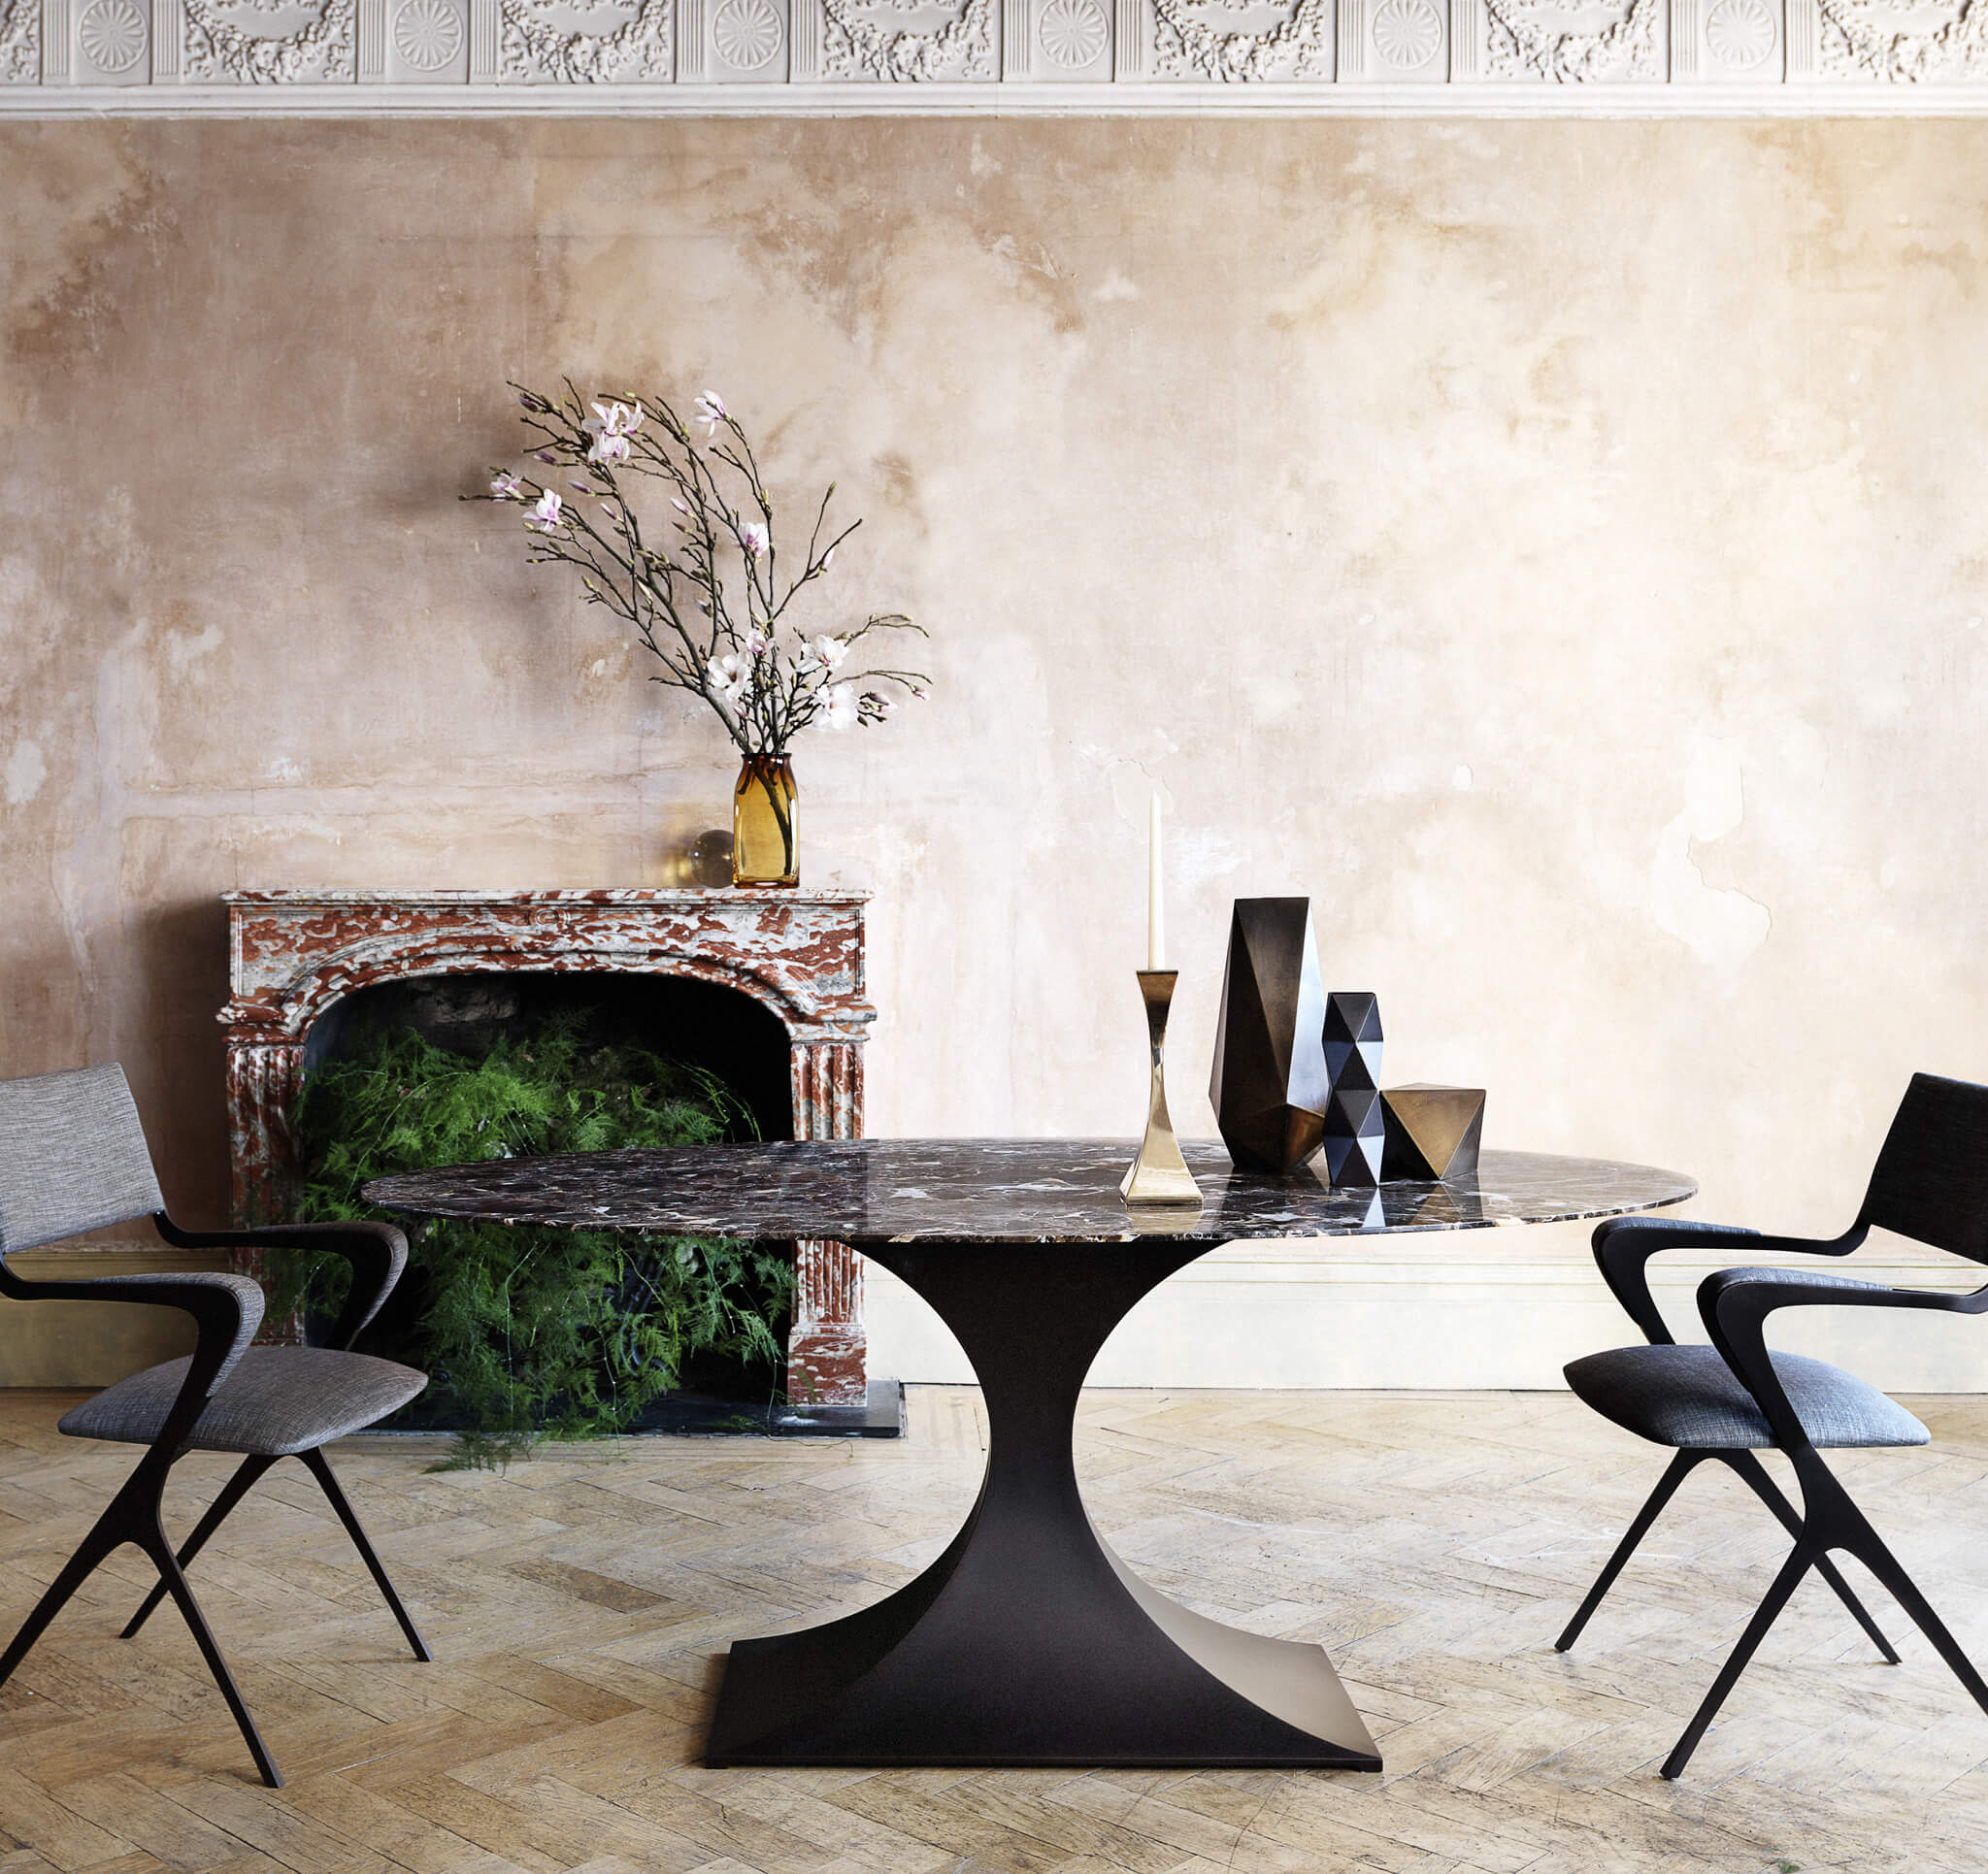 Capricorn Oval Dining Table | Modern Furniture by Tom Faulkner